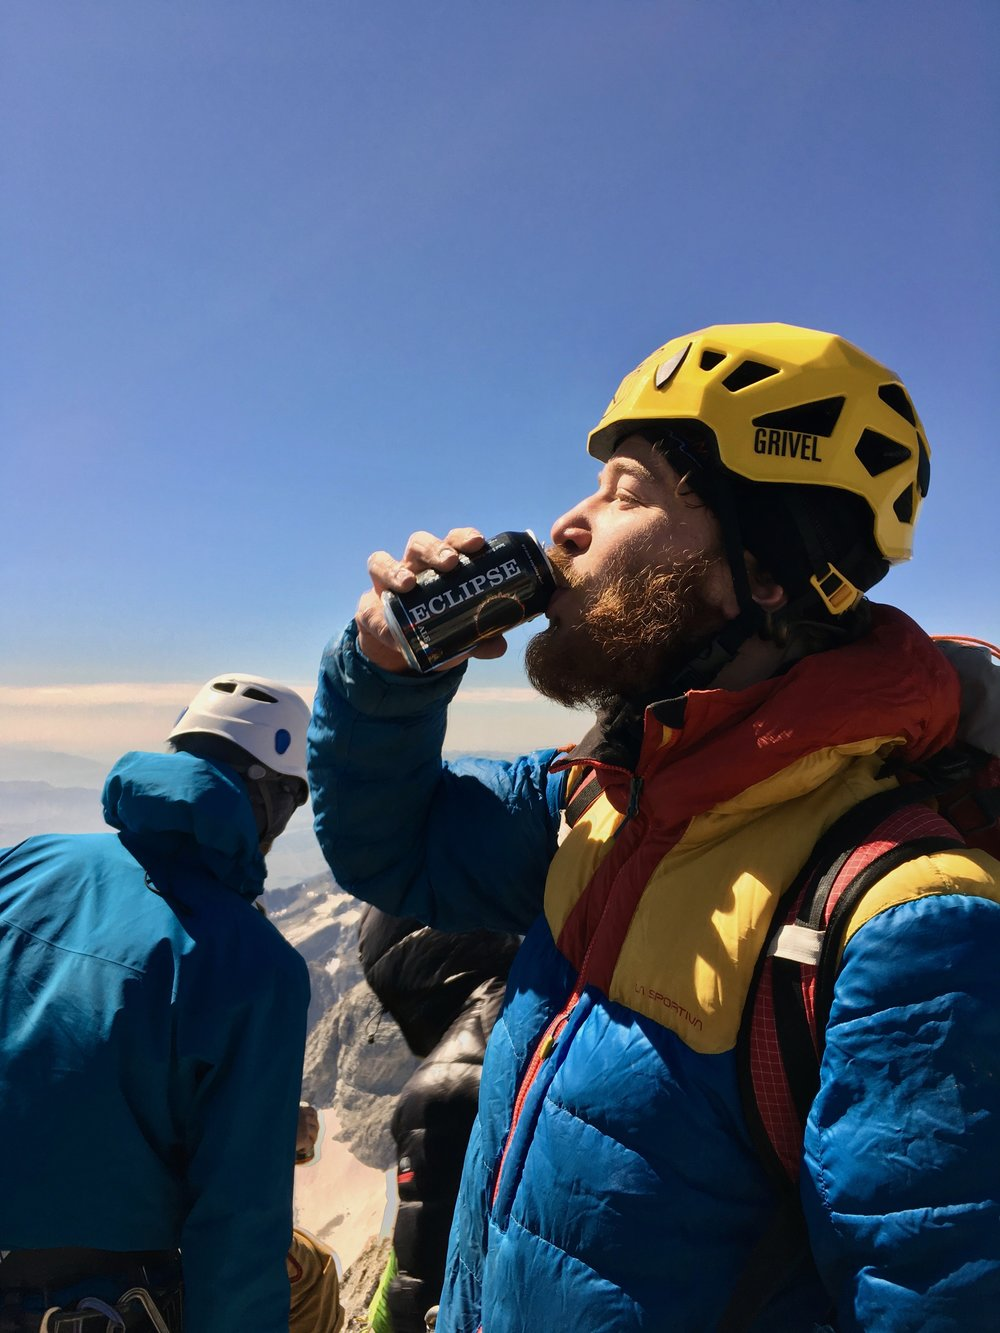 No summit is complete without a summit beer!